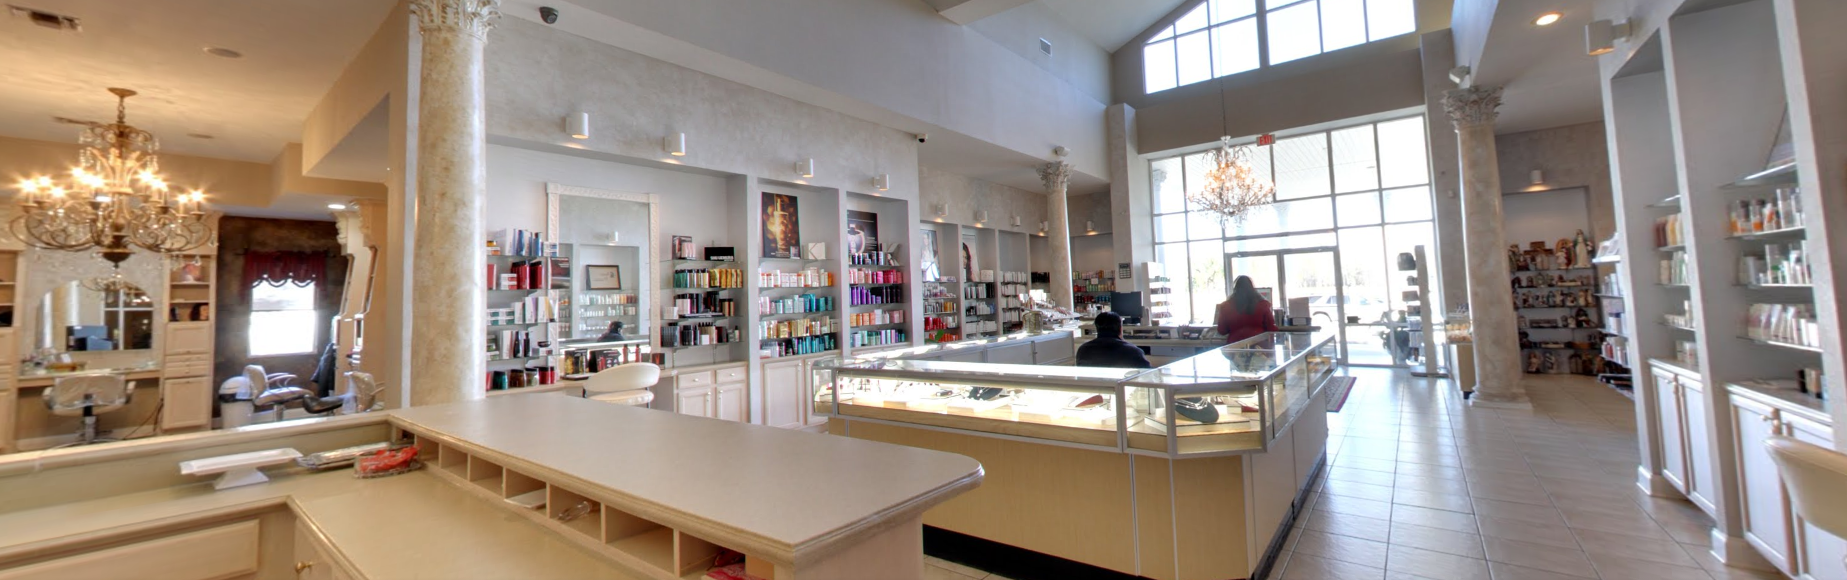 jeanne-maureens-european-spa-salon-google-search11